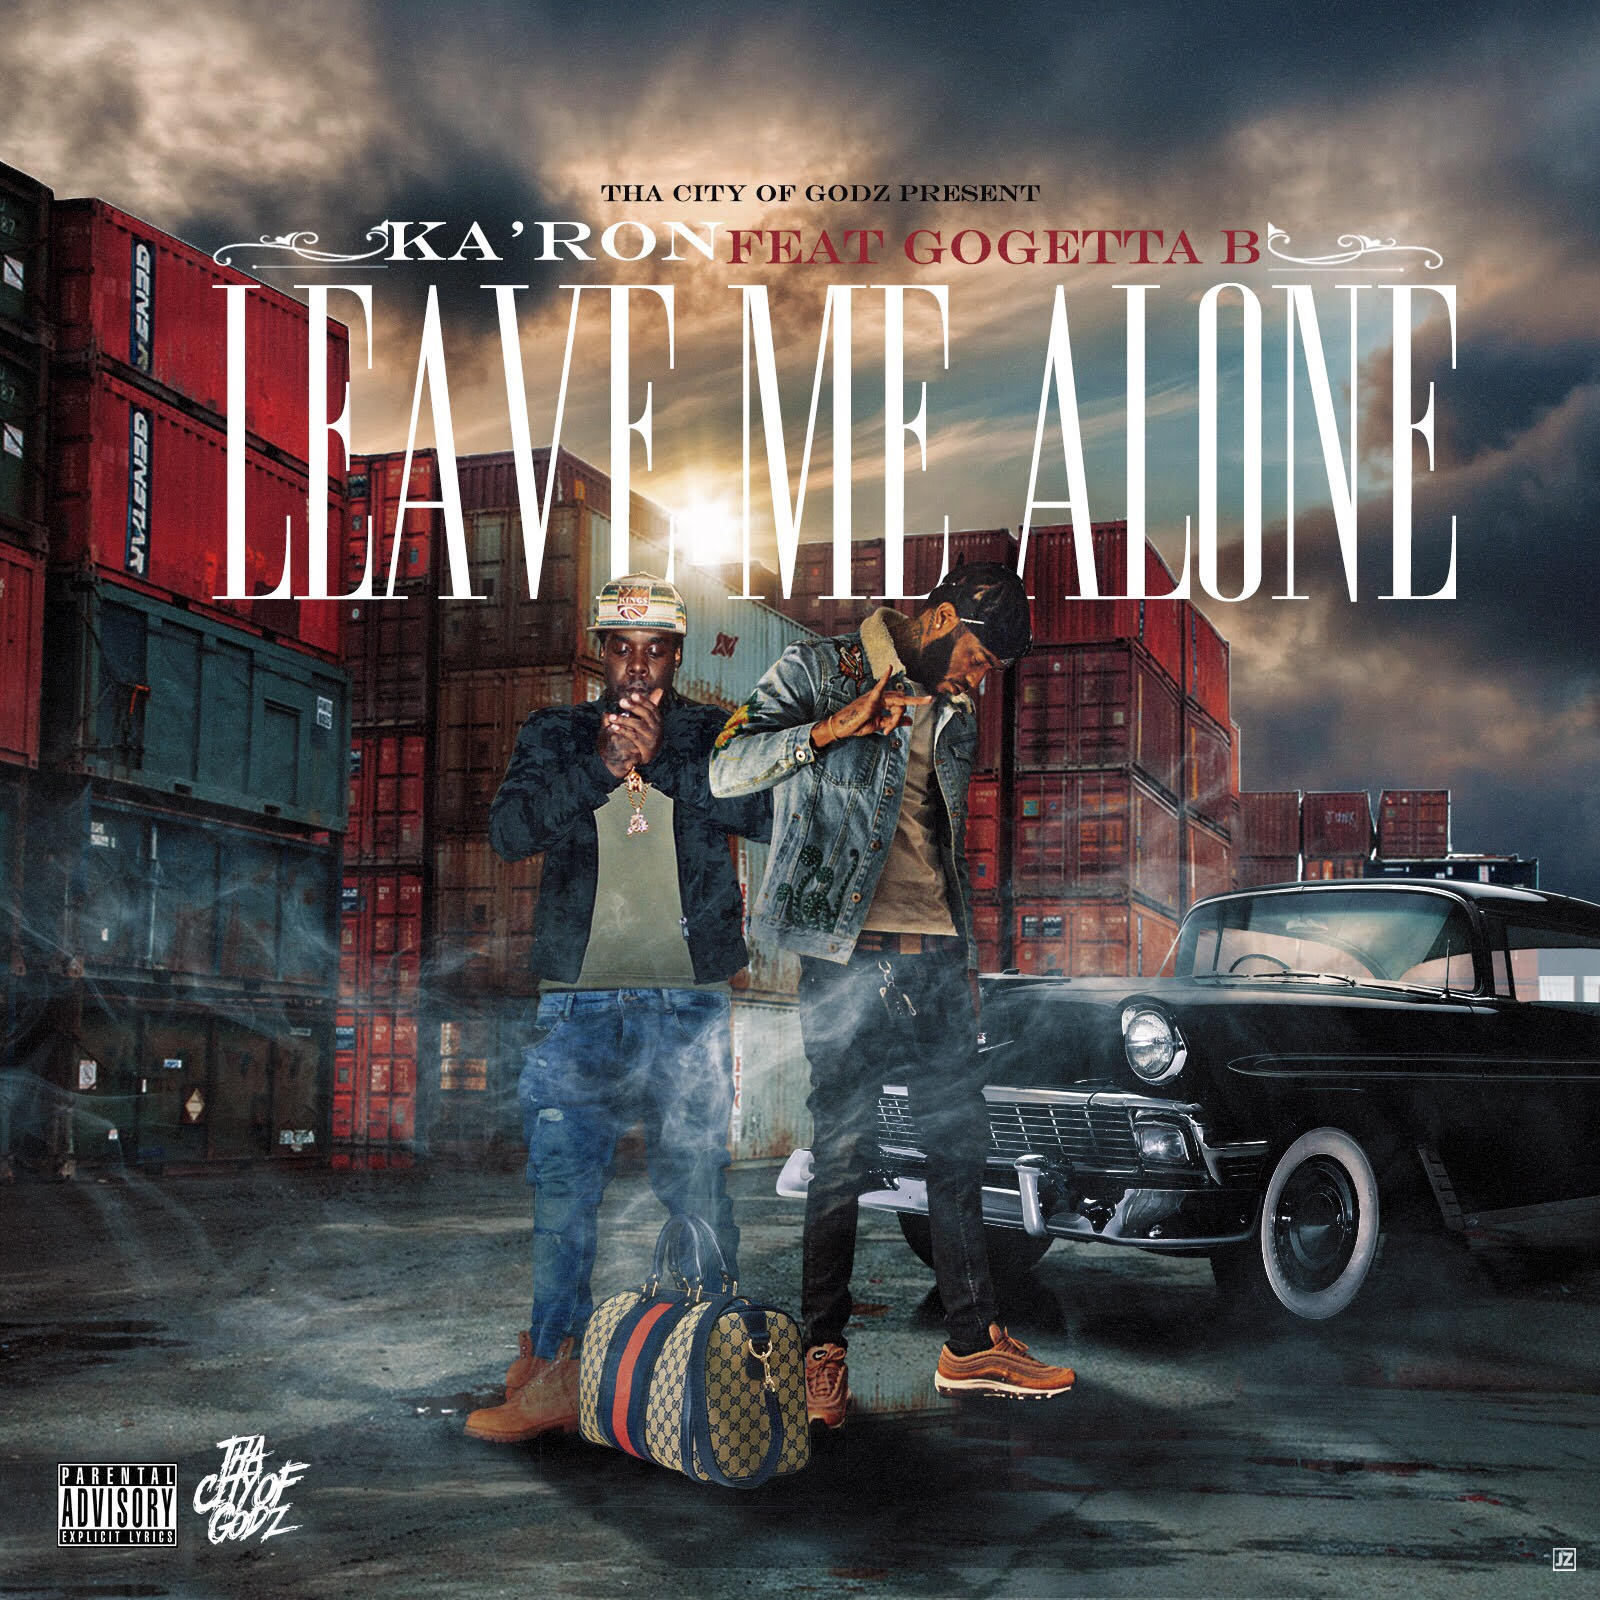 New Music: Ka'ron – Leave Me Alone featuring Gogetta B | @Cog_Karon